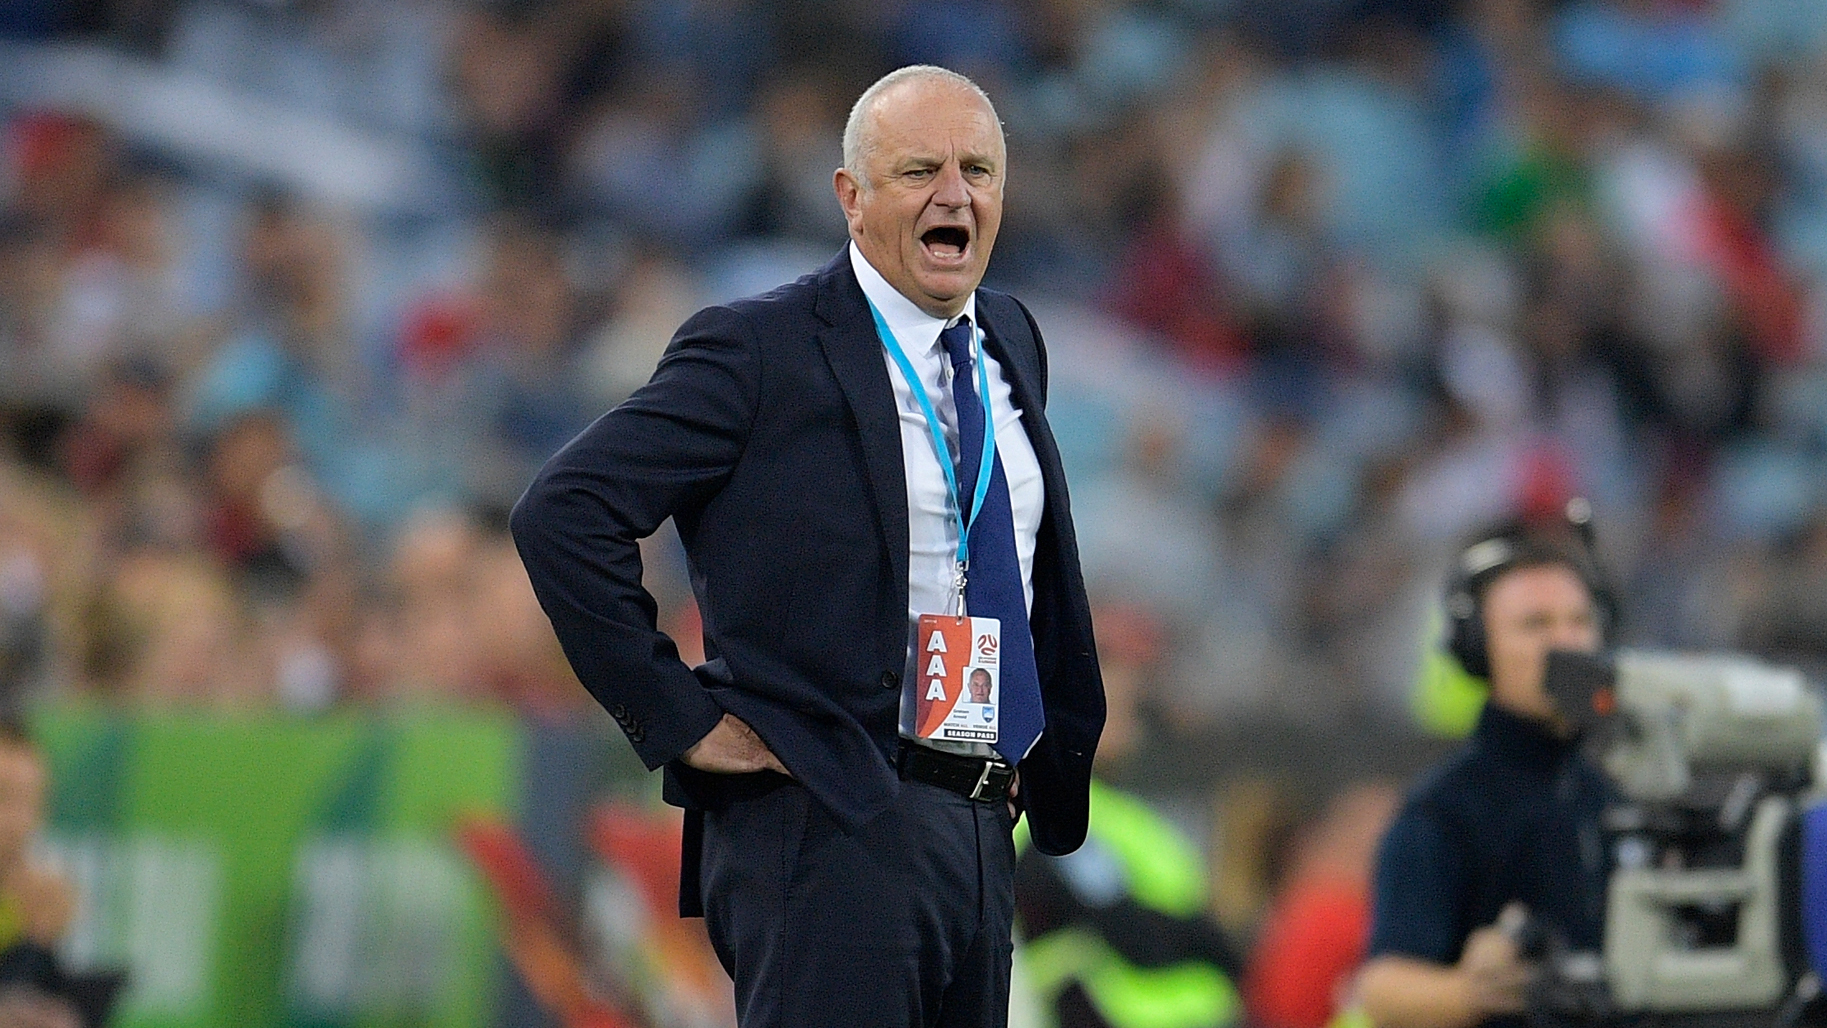 Graham Arnold among FFA candidates to coach Socceroos at World Cup